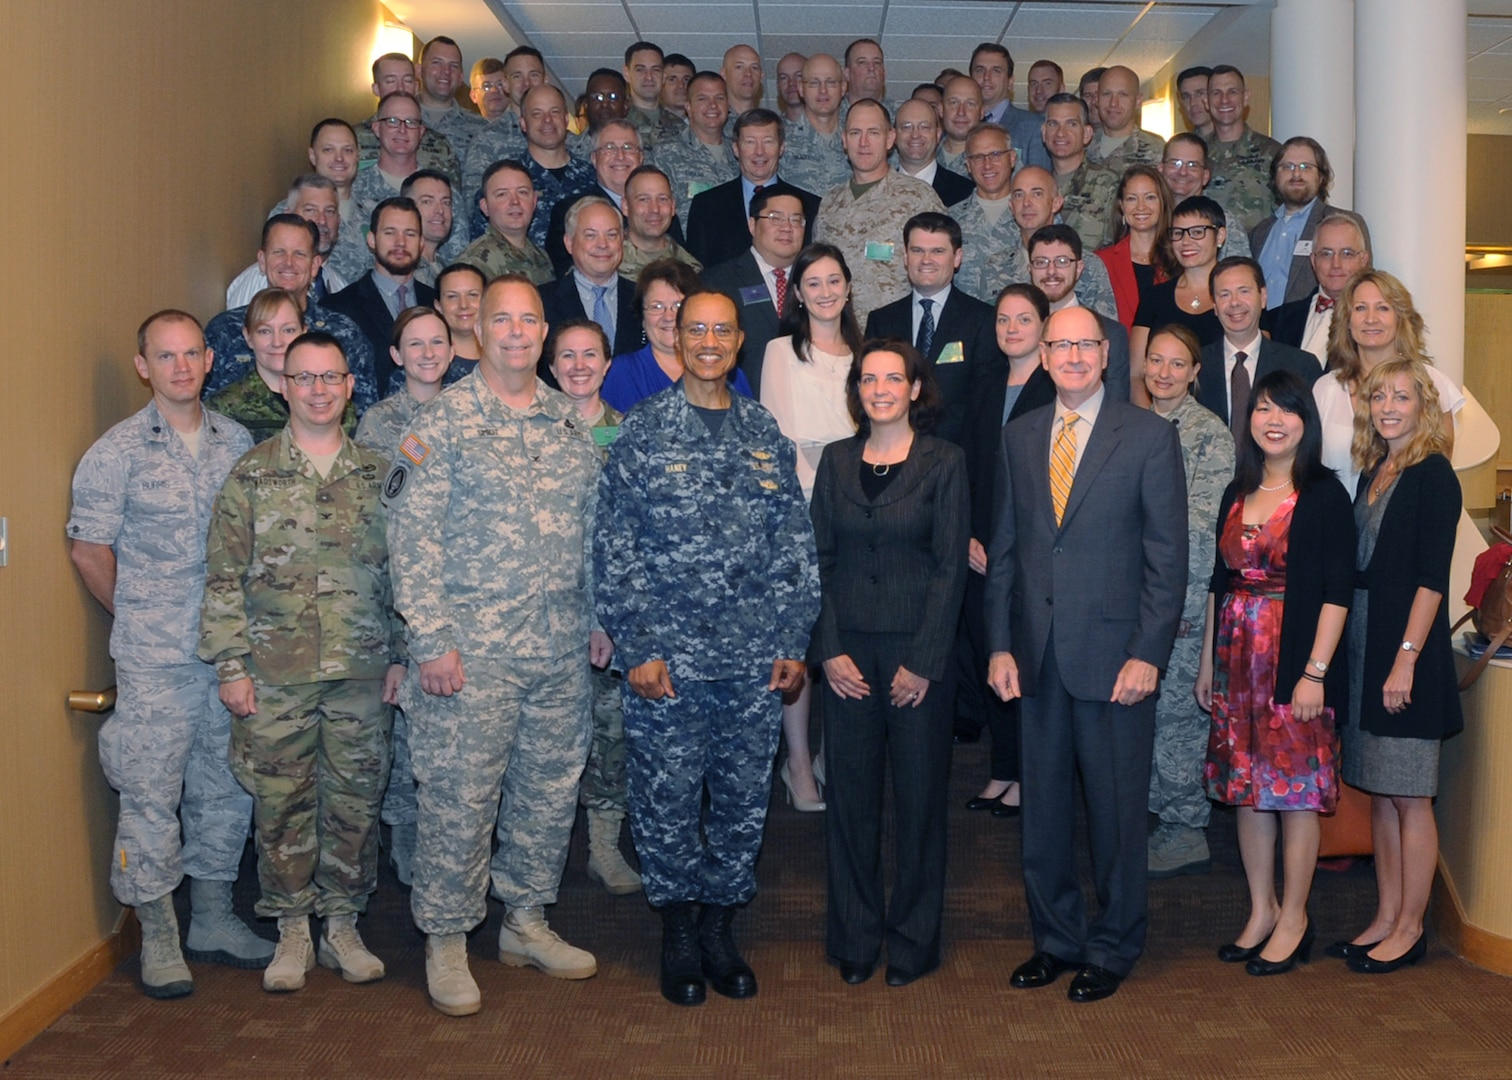 Adm. Cecil D. Haney (front row, center left), U.S. Strategic Command (USSTRATCOM) commander; Jennifer M. O'Connor (front row, center right), general counsel of the Department of Defense (DoD); retired Air Force Gen. C. Robert Kehler (front row, third from right), former USSTRATCOM commander; and Col. Michael L. Smidt (front row, third from left), USSTRATCOM staff judge advocate; stand with attendees of the inaugural USSTRATCOM-hosted Advanced Operations Law Conference at the Dougherty Conference Center, Offutt Air Force Base, Neb., Sept. 8, 2016. The three-day conference, held in collaboration with the National Strategic Research Institute and the University of Nebraska College of Law, brought together USSTRATCOM leadership, attorneys from government organizations and academia, and other legal experts to better understand operational law and share thought processes across organizational lines. Topics of discussion included economic targeting, foreign approach to the law of armed conflict, and critical issues in space and cyber law and policy. One of nine DoD unified combatant commands, USSTRATCOM has global strategic missions assigned through the Unified Command Plan, which include strategic deterrence; space operations; cyberspace operations; joint electronic warfare; global strike; missile defense; intelligence, surveillance and reconnaissance; combating weapons of mass destruction; and analysis and targeting. (DoD photo by Steve Cunningham)